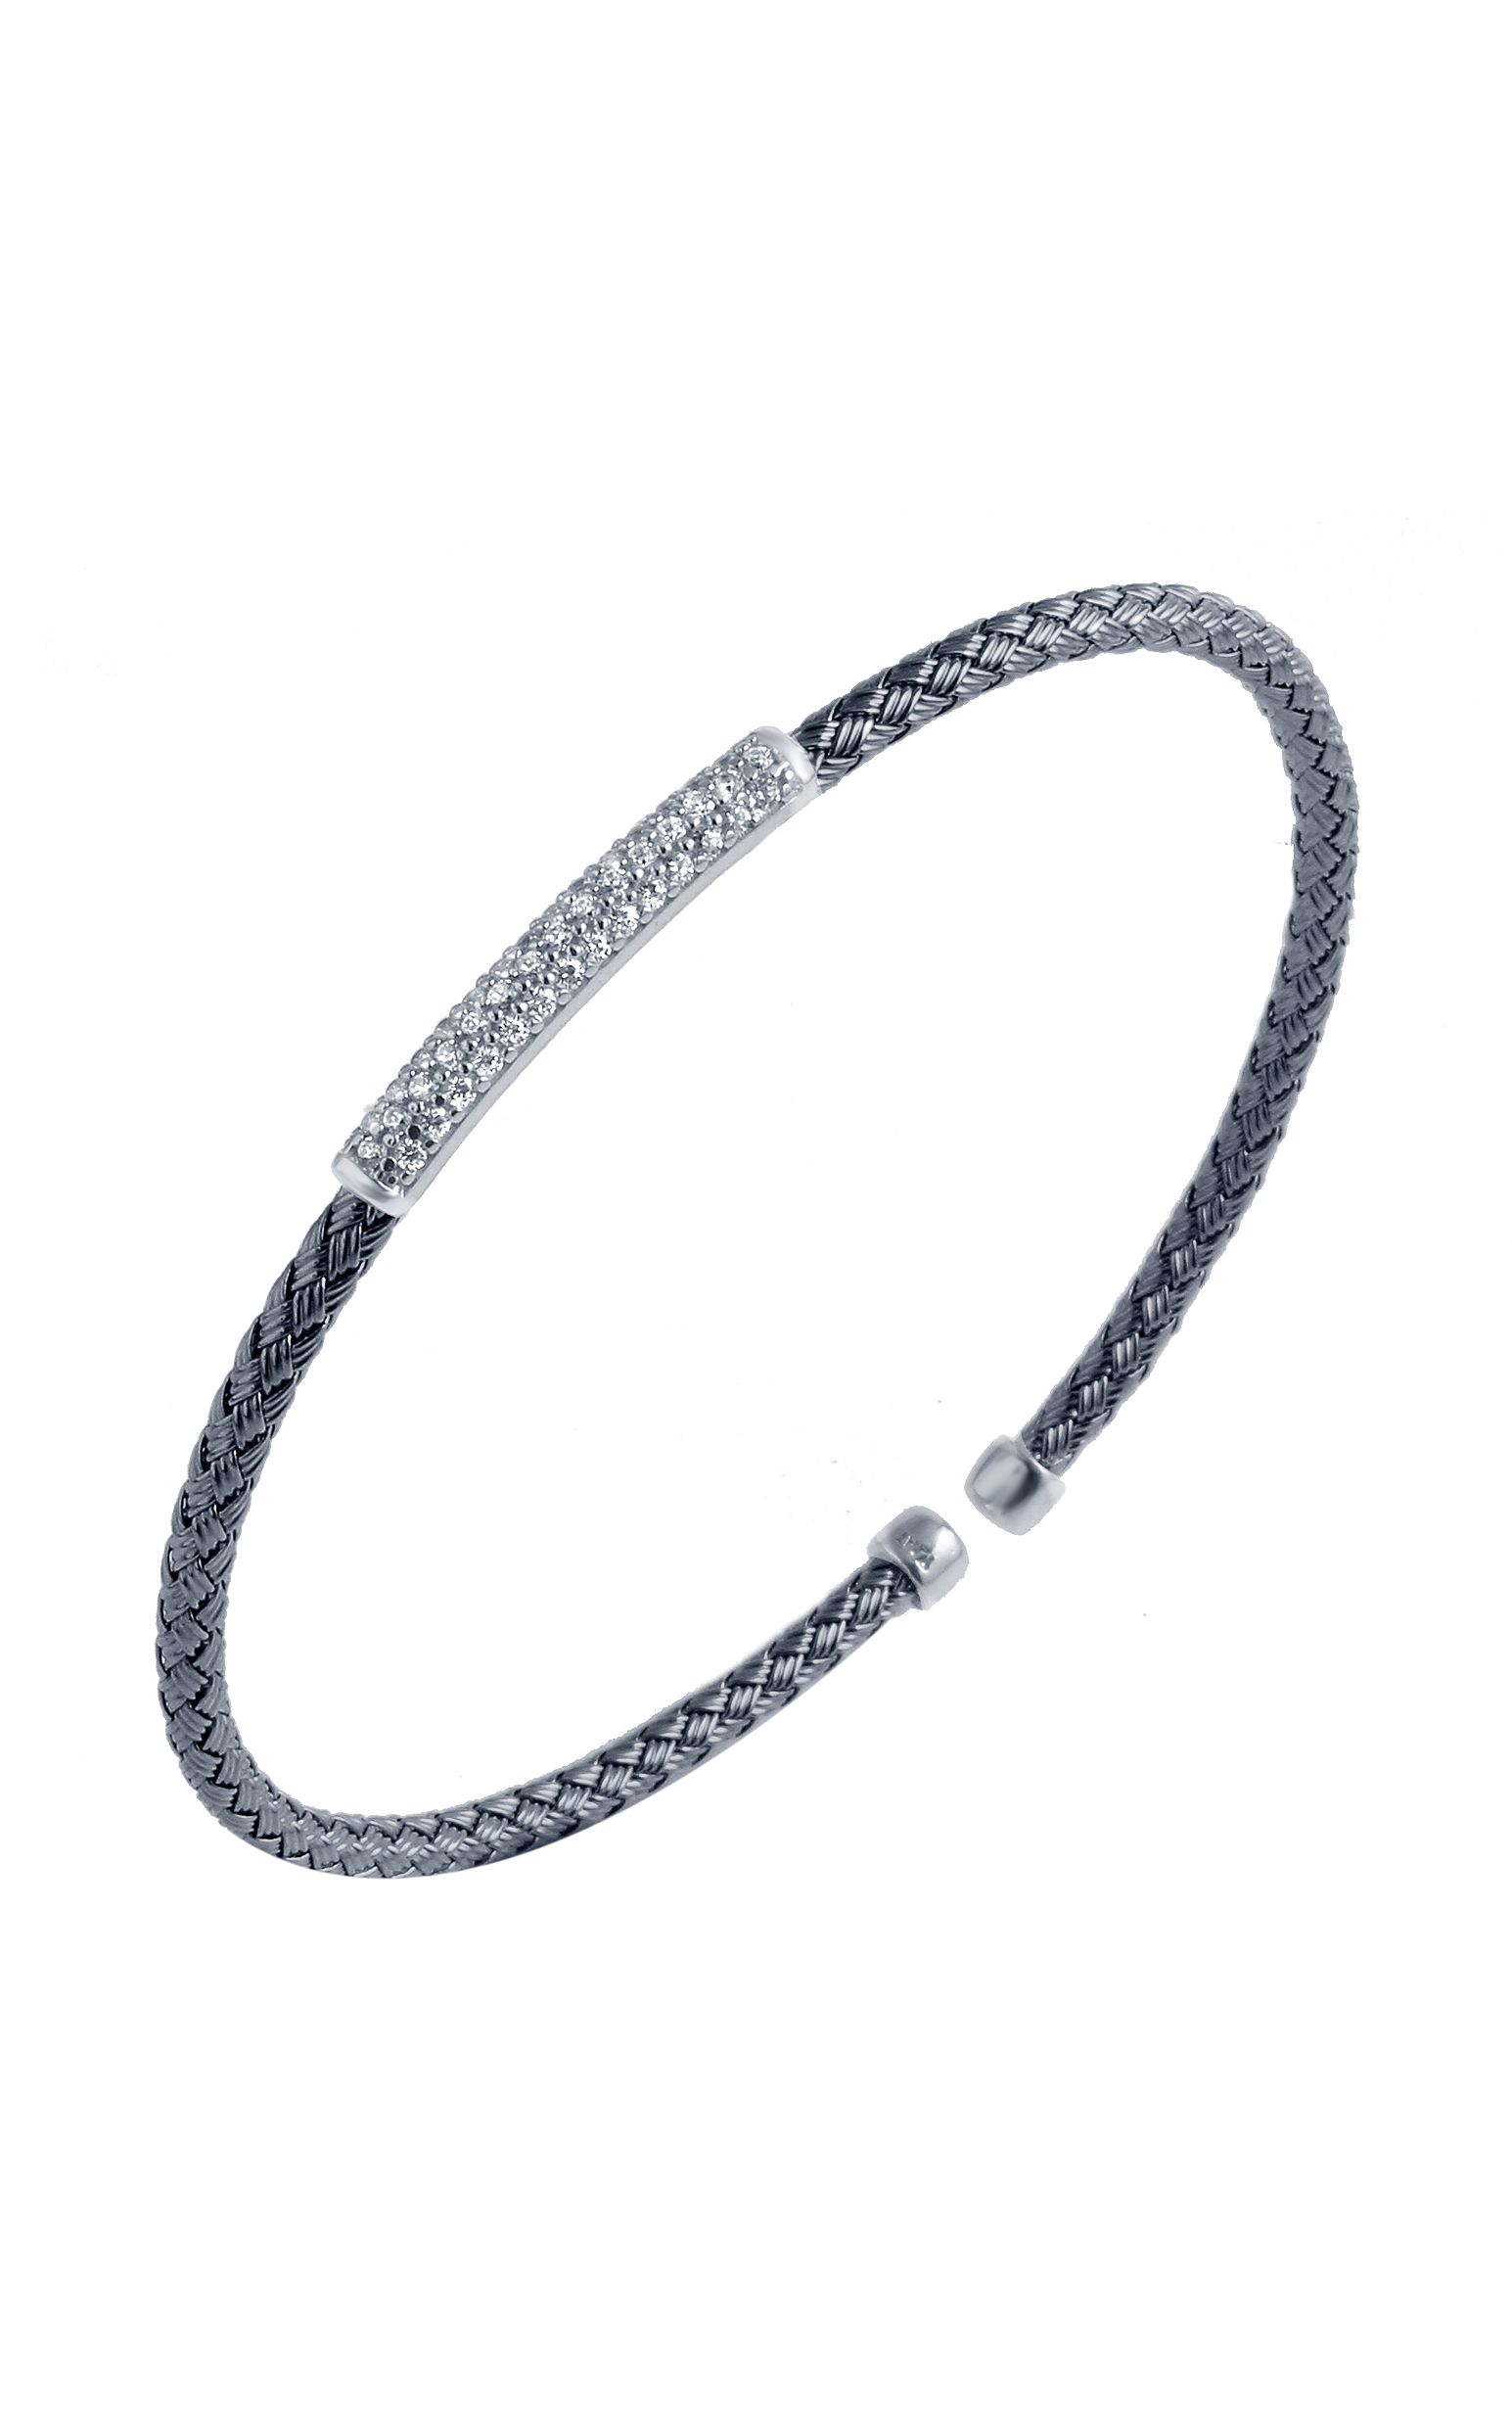 Charles Garnier Bracelets Bracelet Paolo Collection MLC8001BWZ product image